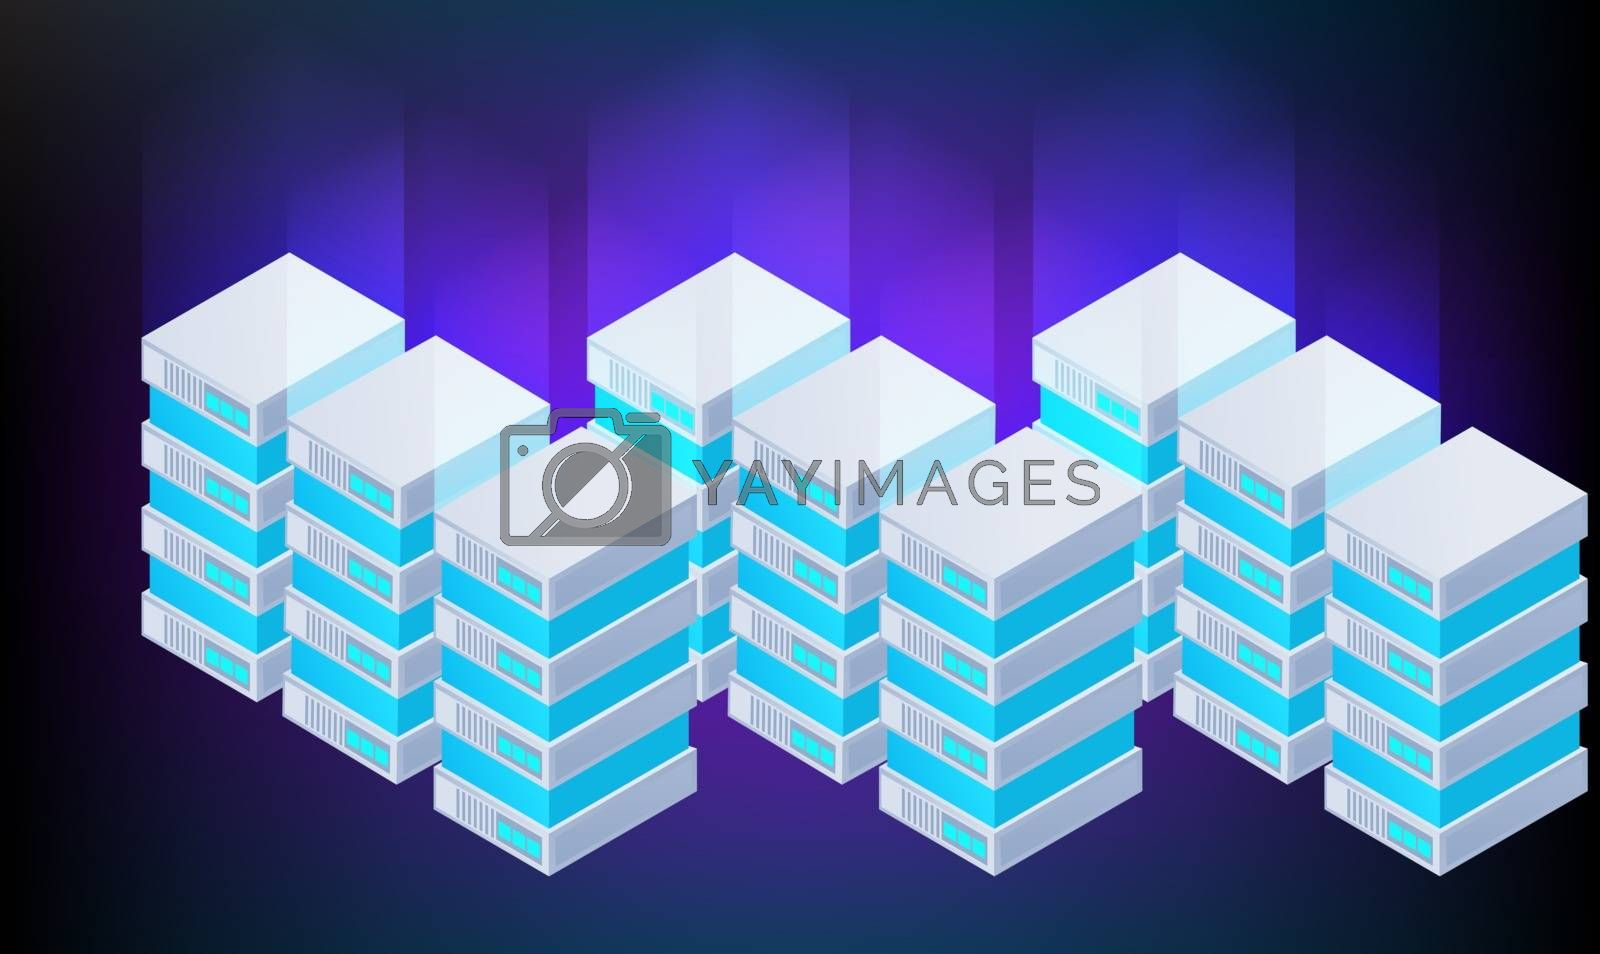 Royalty free image of digital textile design of boxes on abstract background by aanavcreationsplus